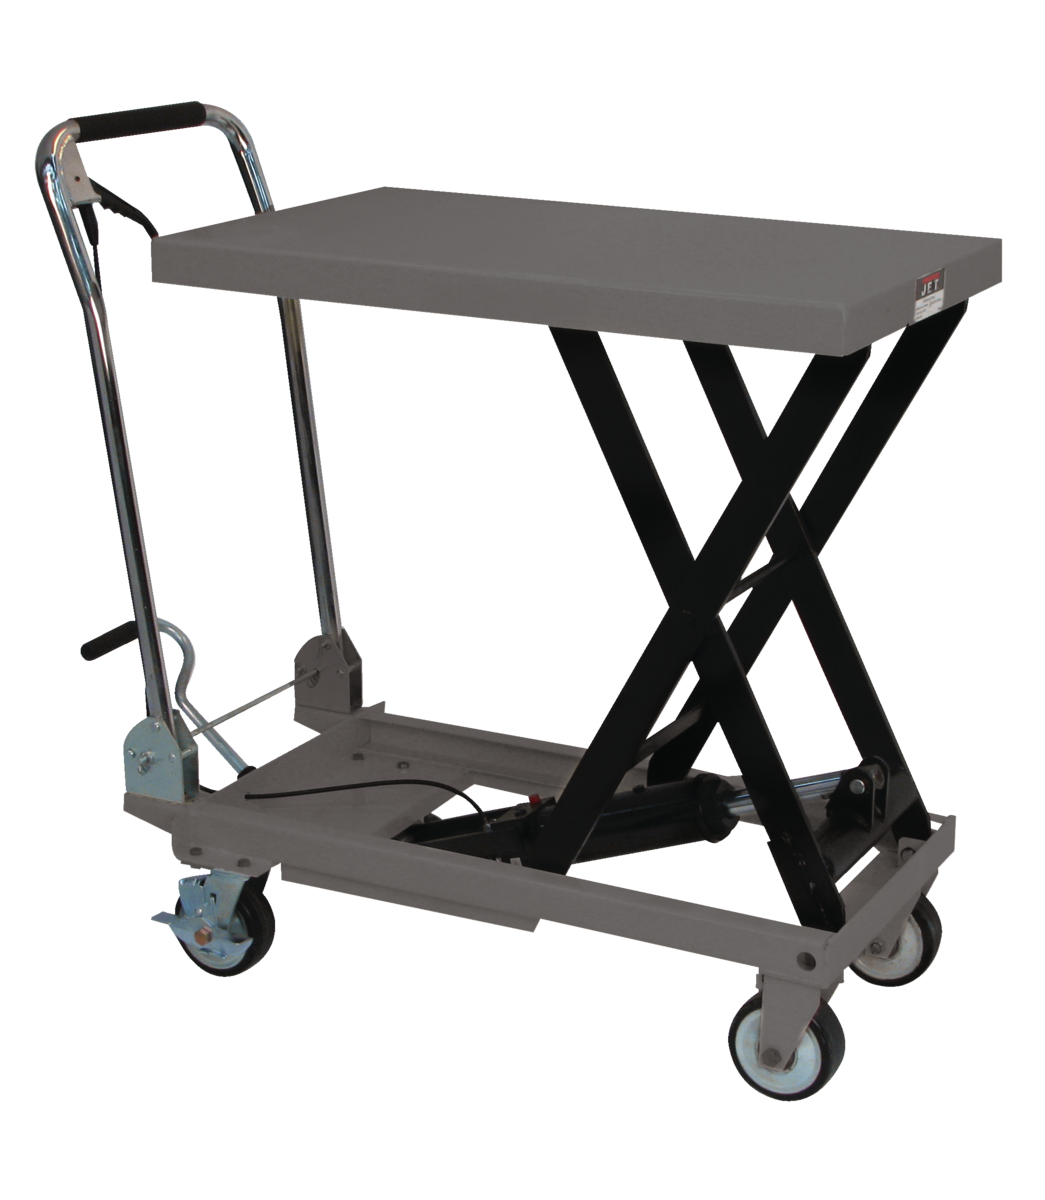 SLT-330F, Scissor Lift Table With Folding Handle